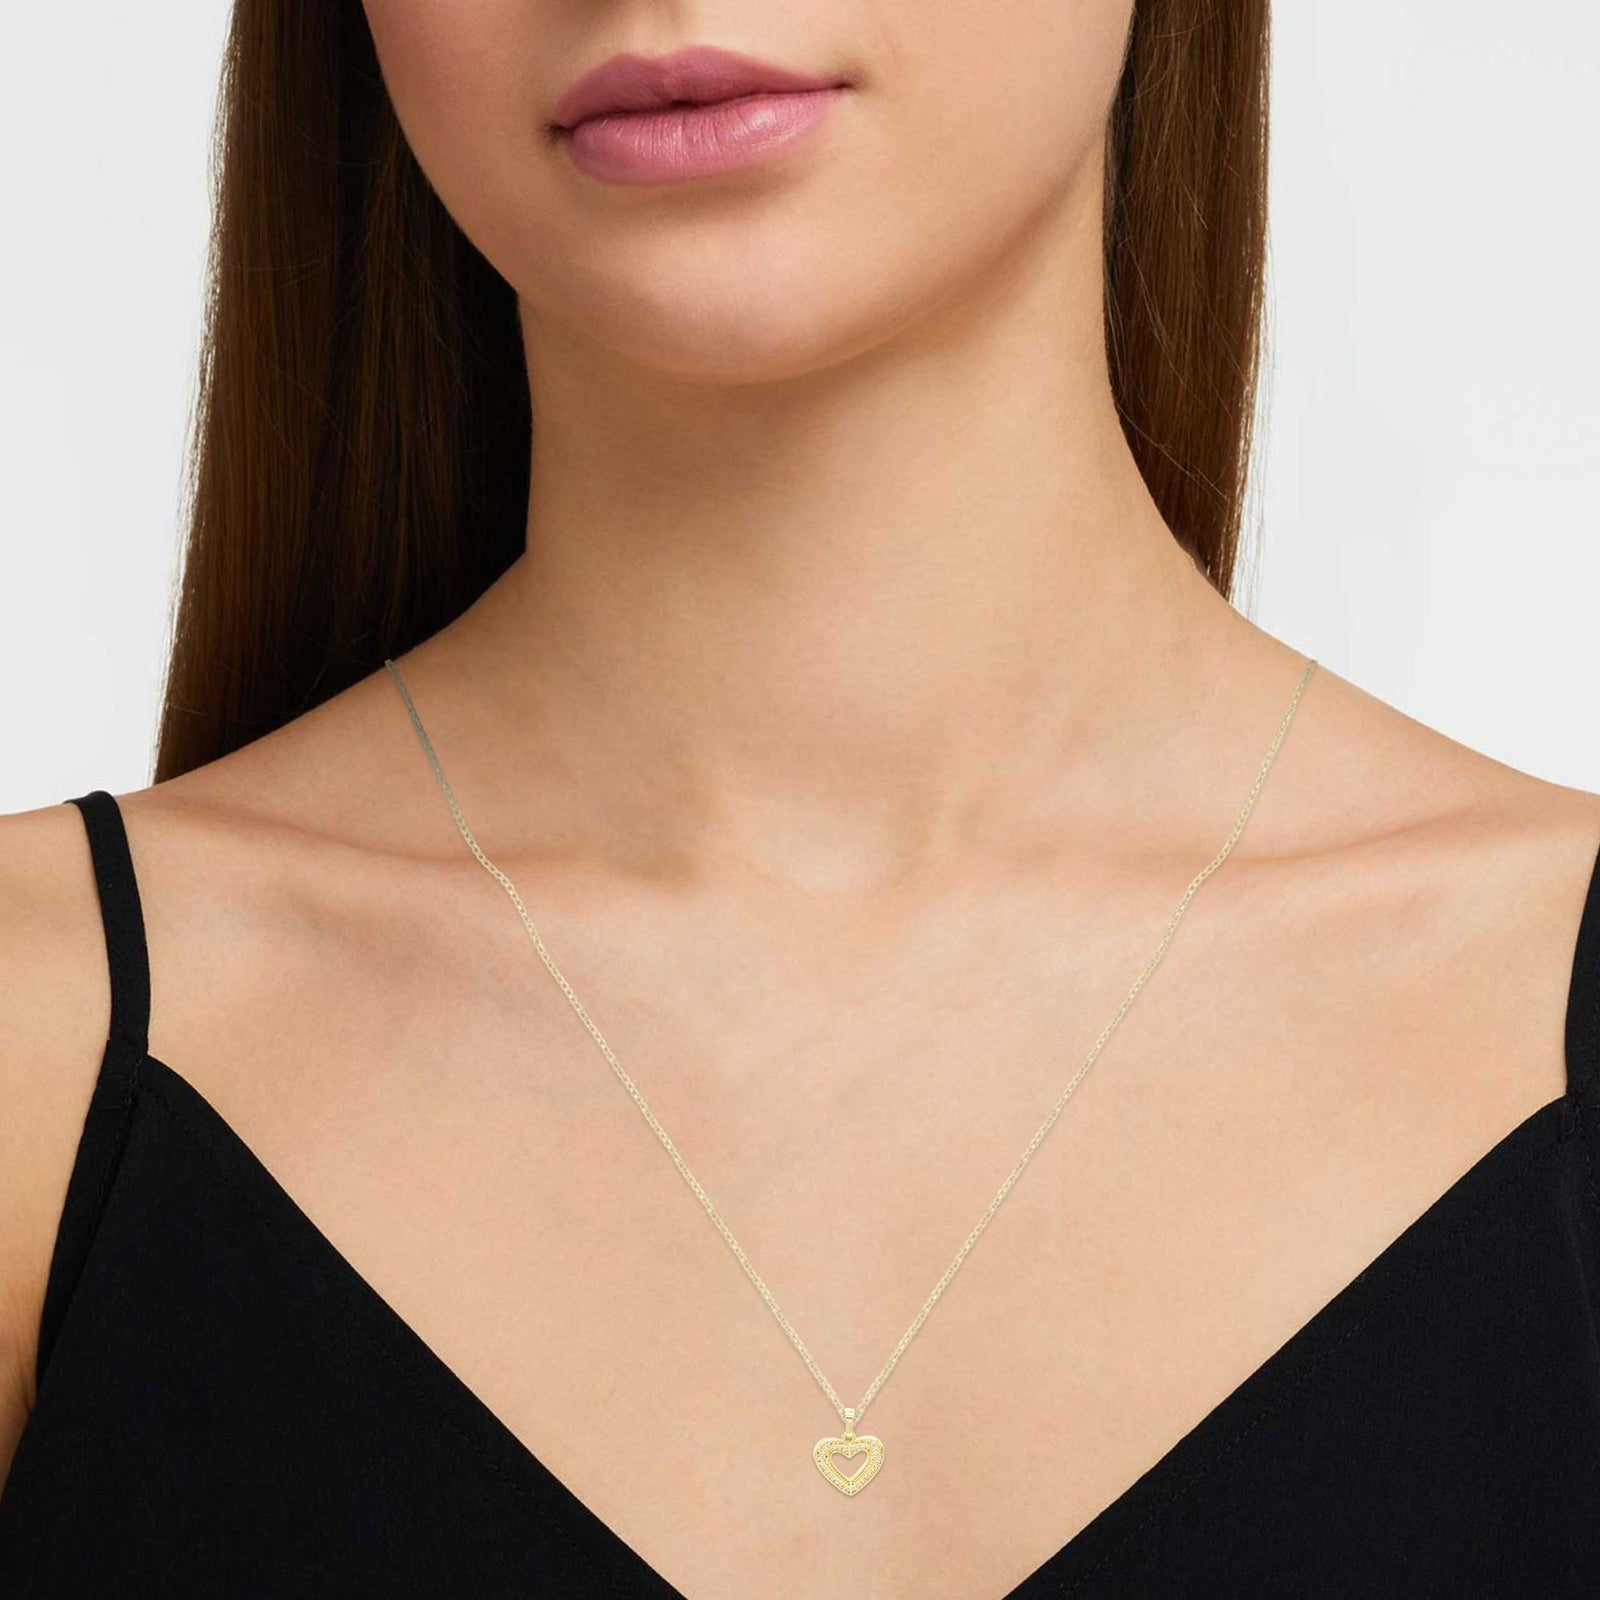 Heart Double Layered Cubic Zirconia Pendant With Necklace Set 14K Gold Filled